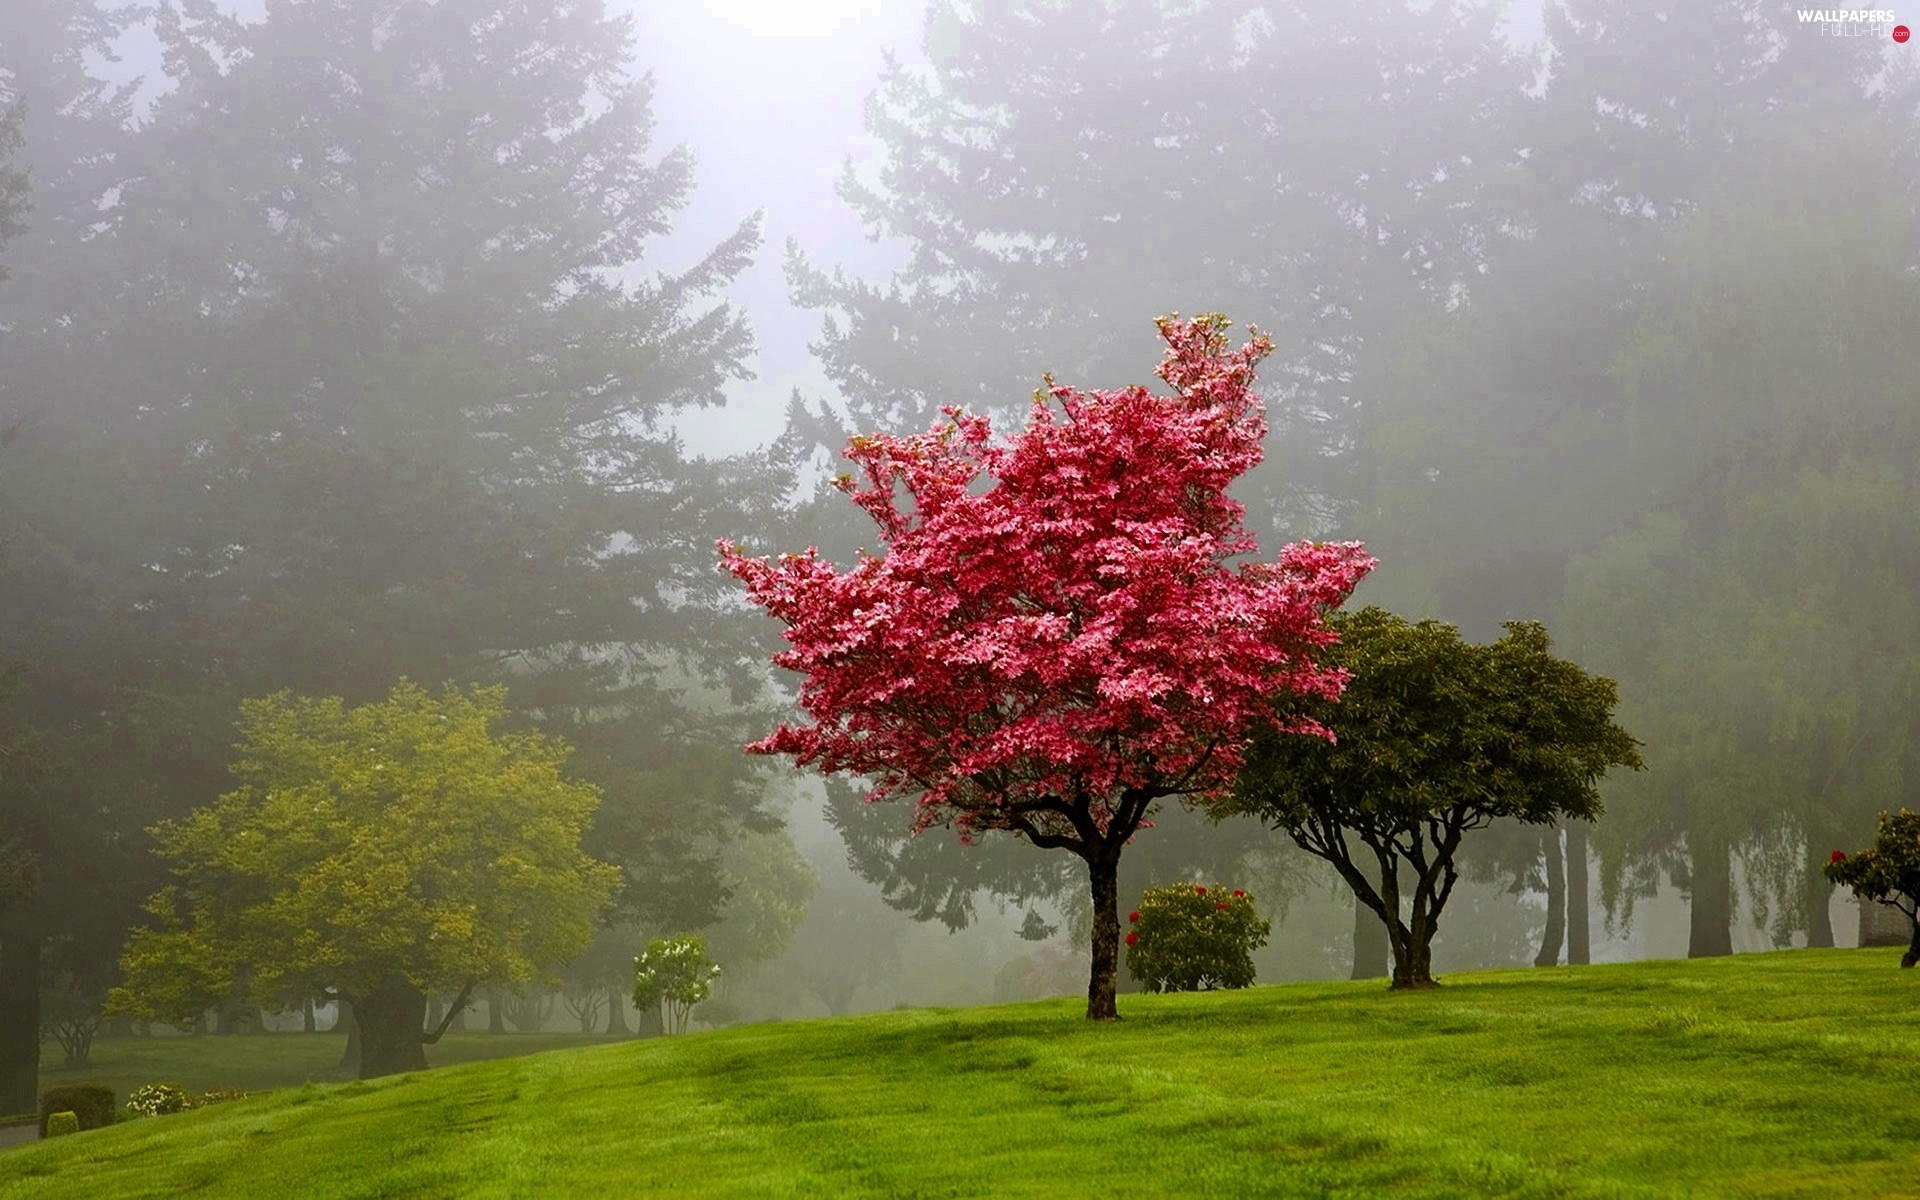 Fog, viewes, Park, trees